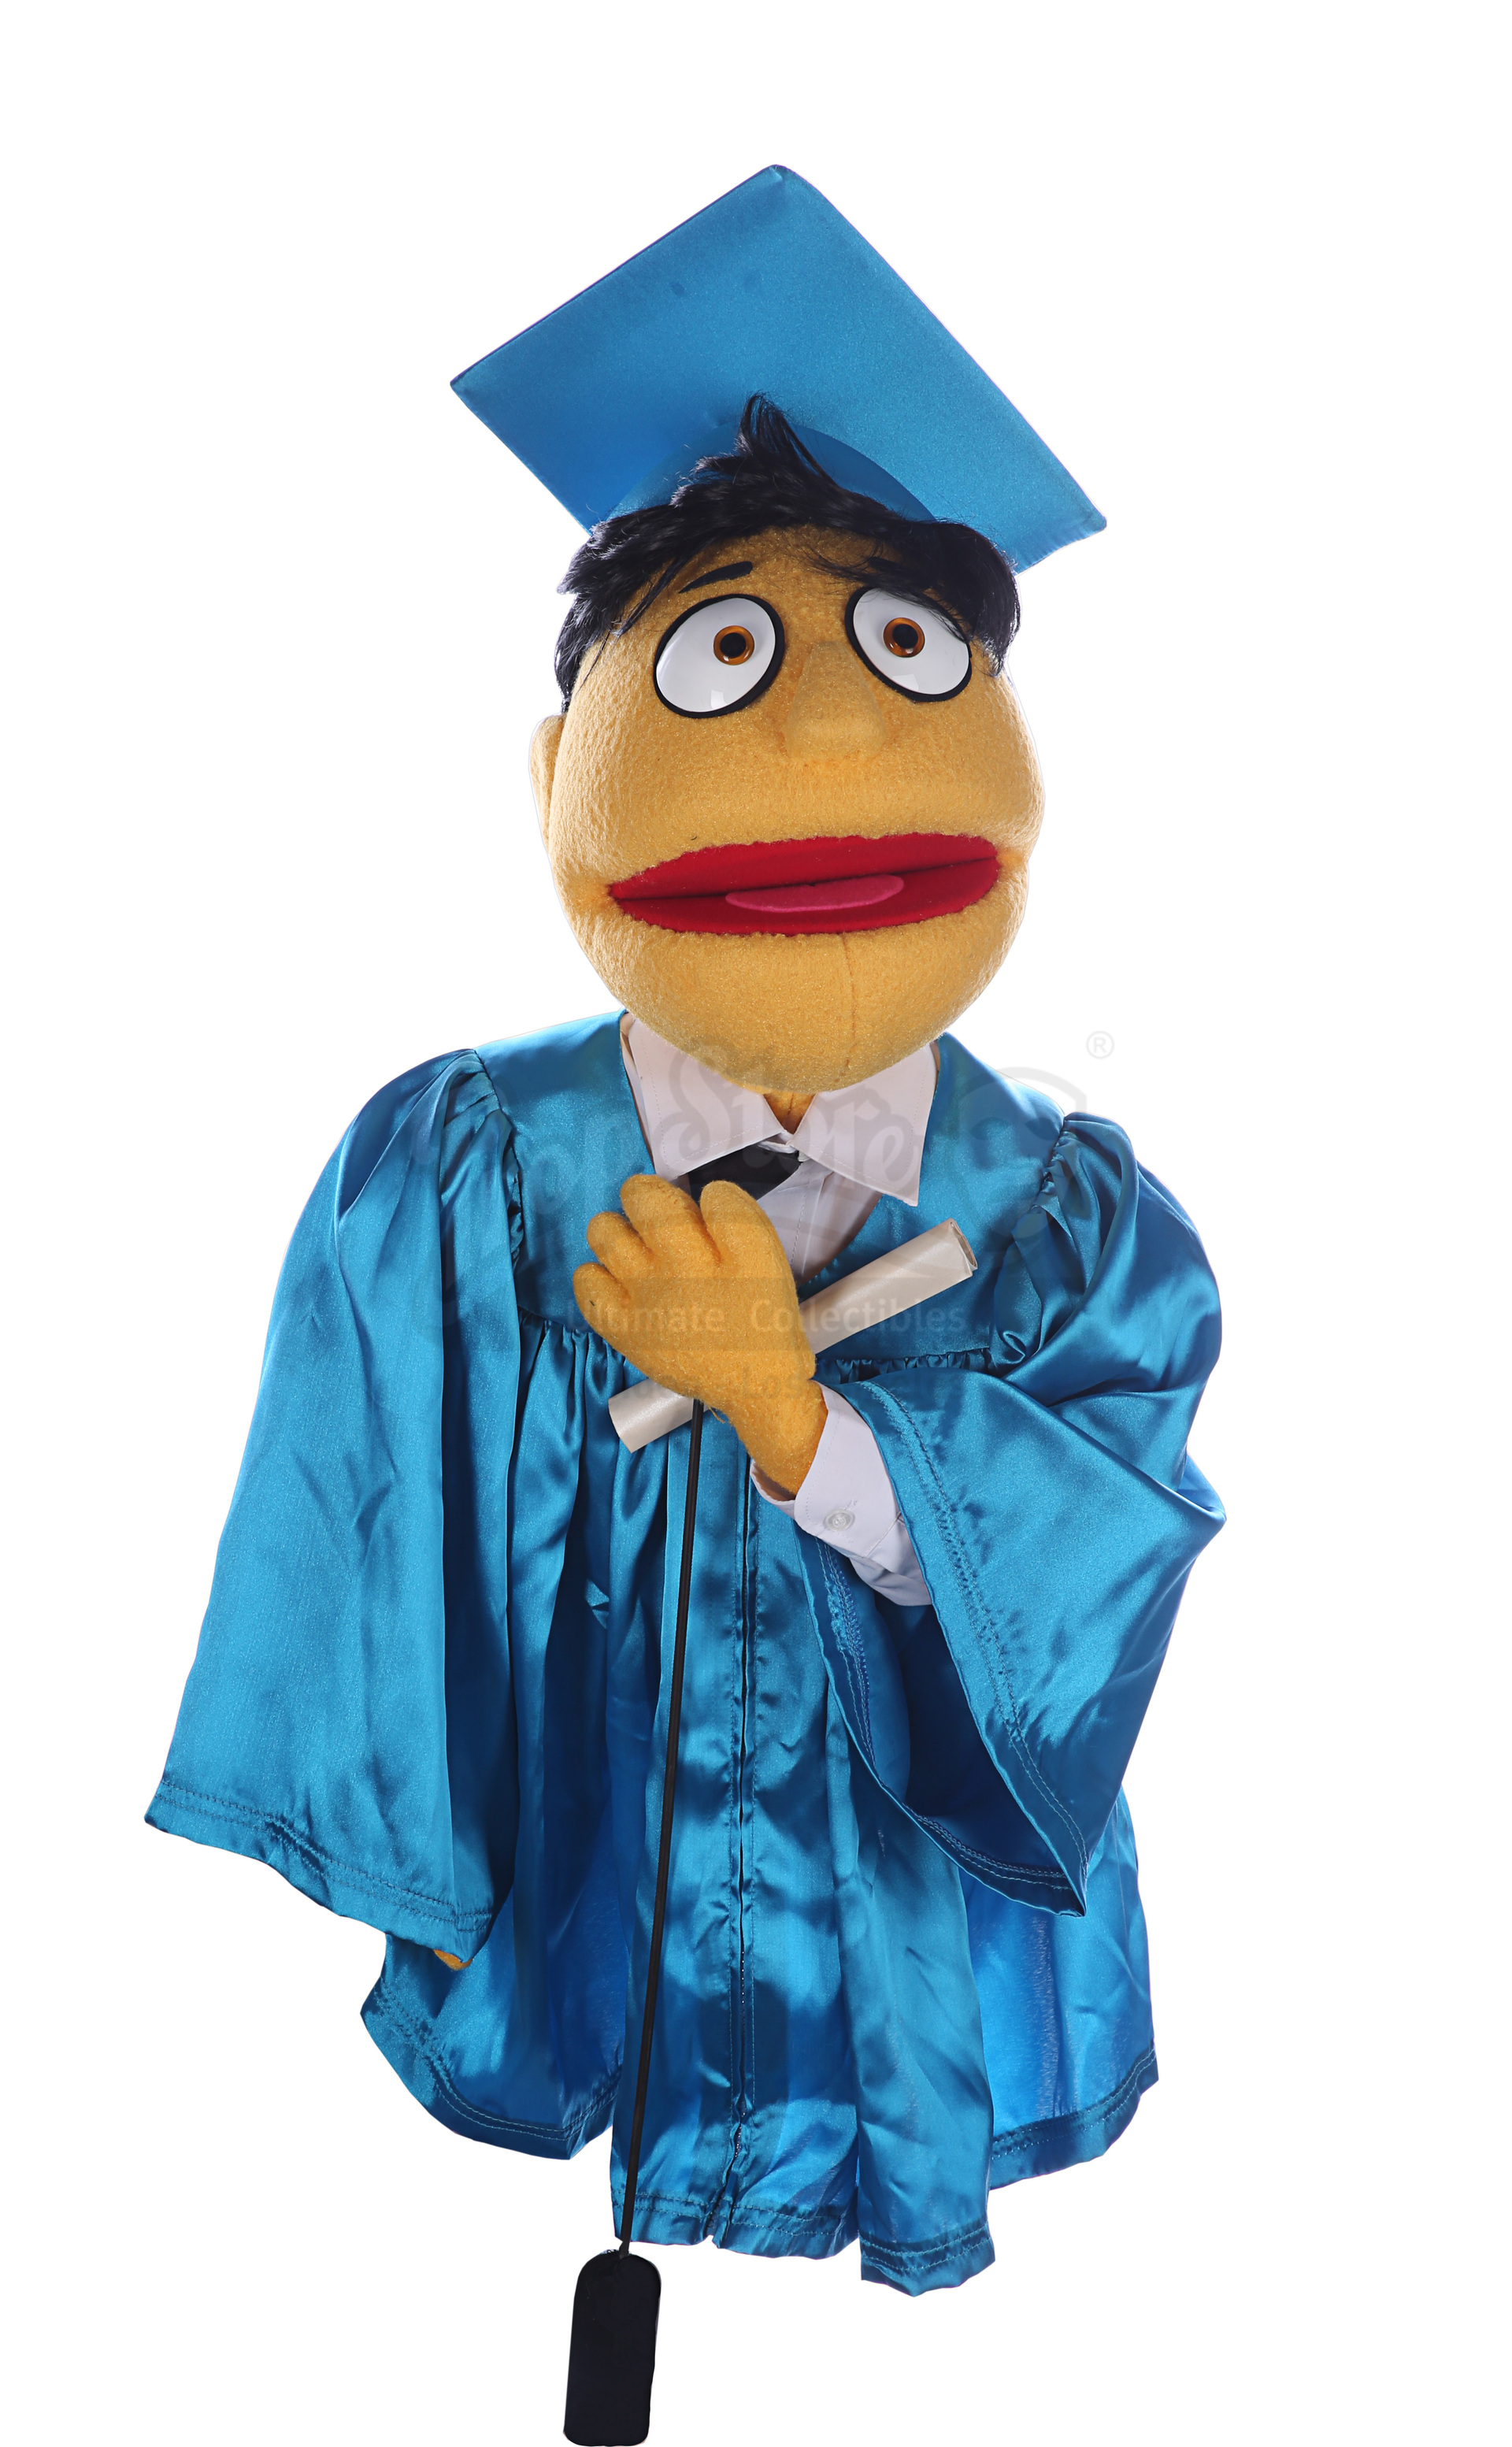 AVENUE Q (STAGE SHOW) - Kate Monster and Princeton Graduation Puppets - Image 2 of 9